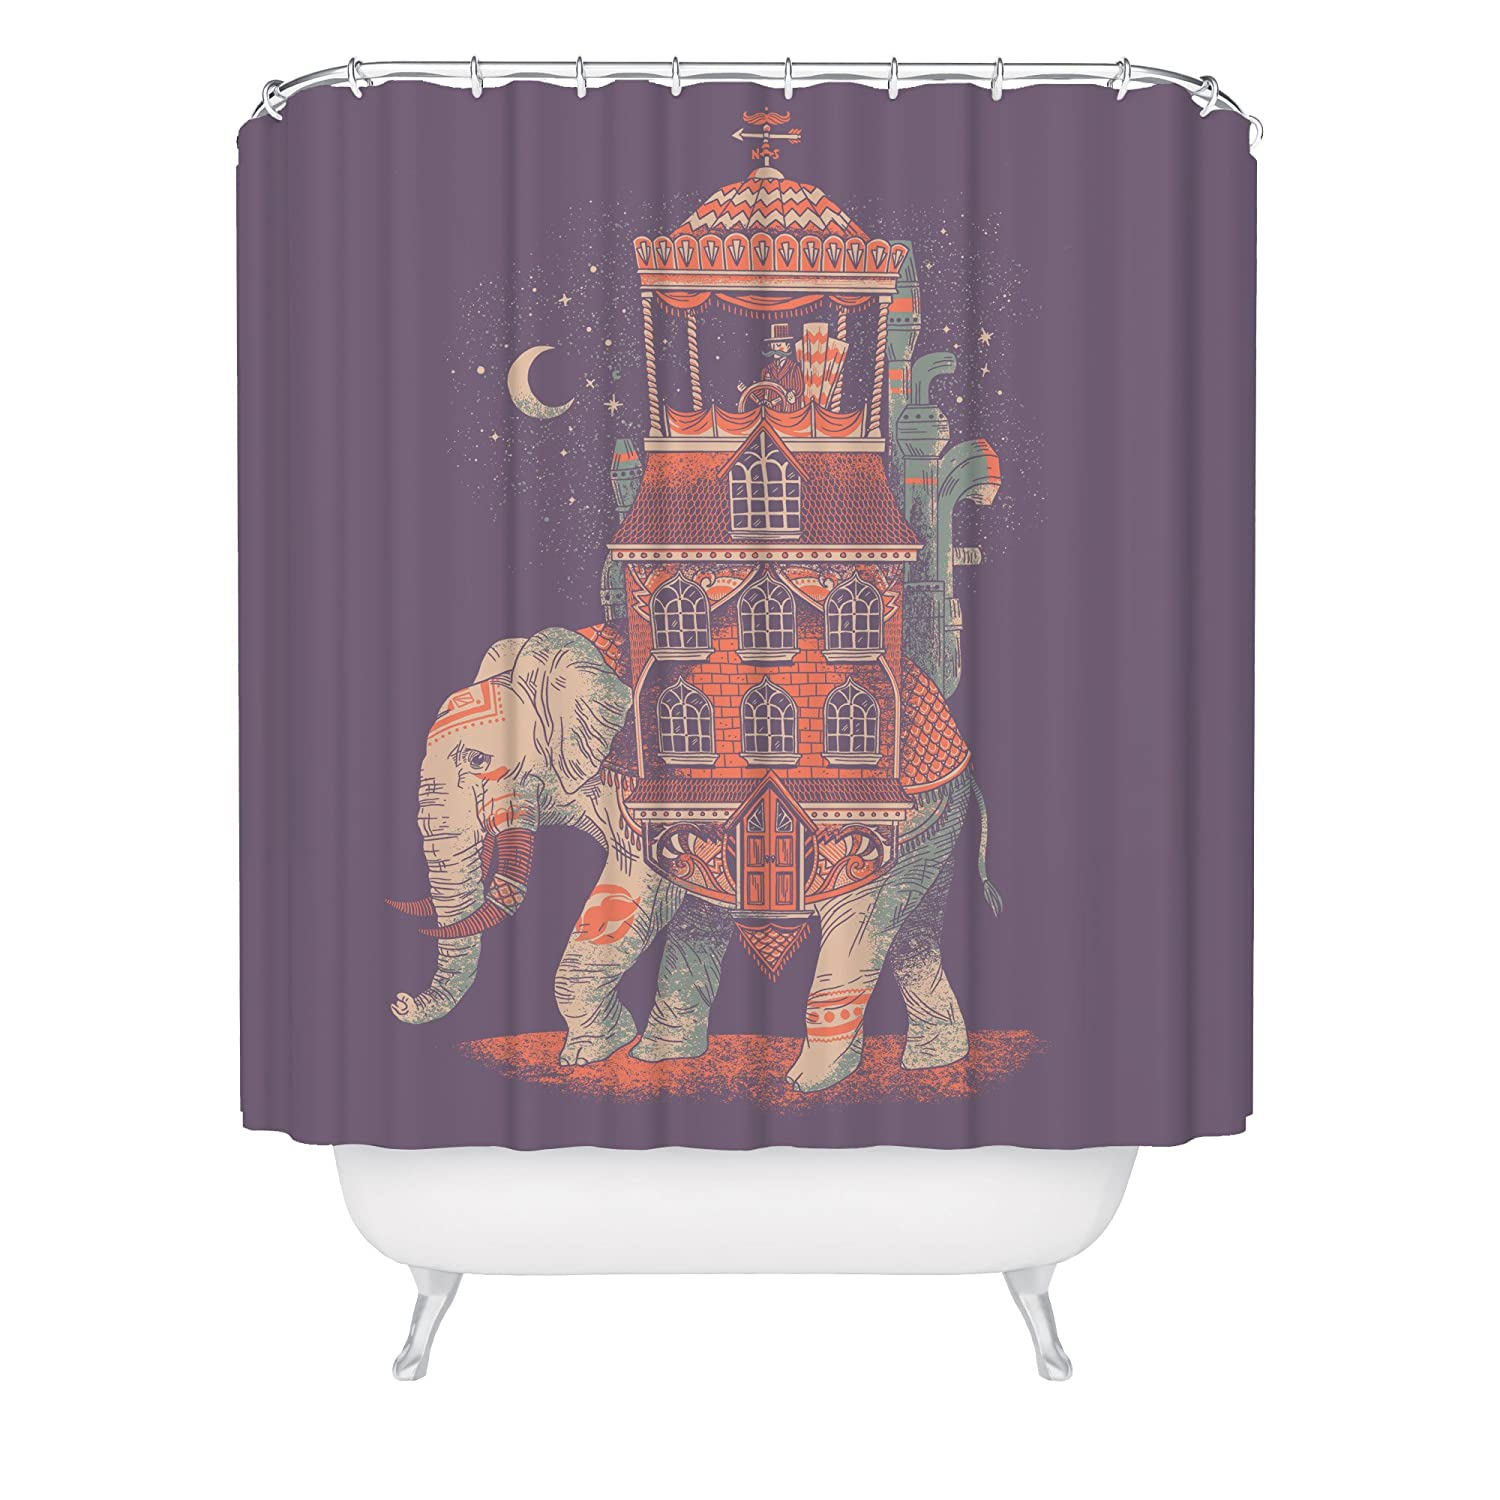 Wet Room Shower Curtains >> Fuzzy Ink Elephant Shower Curtain Boho Bathroom Decor Indian Theme Shower Curtain Elephant Wet Room Curtain Quirky Chic Curtains Mildew Resistant